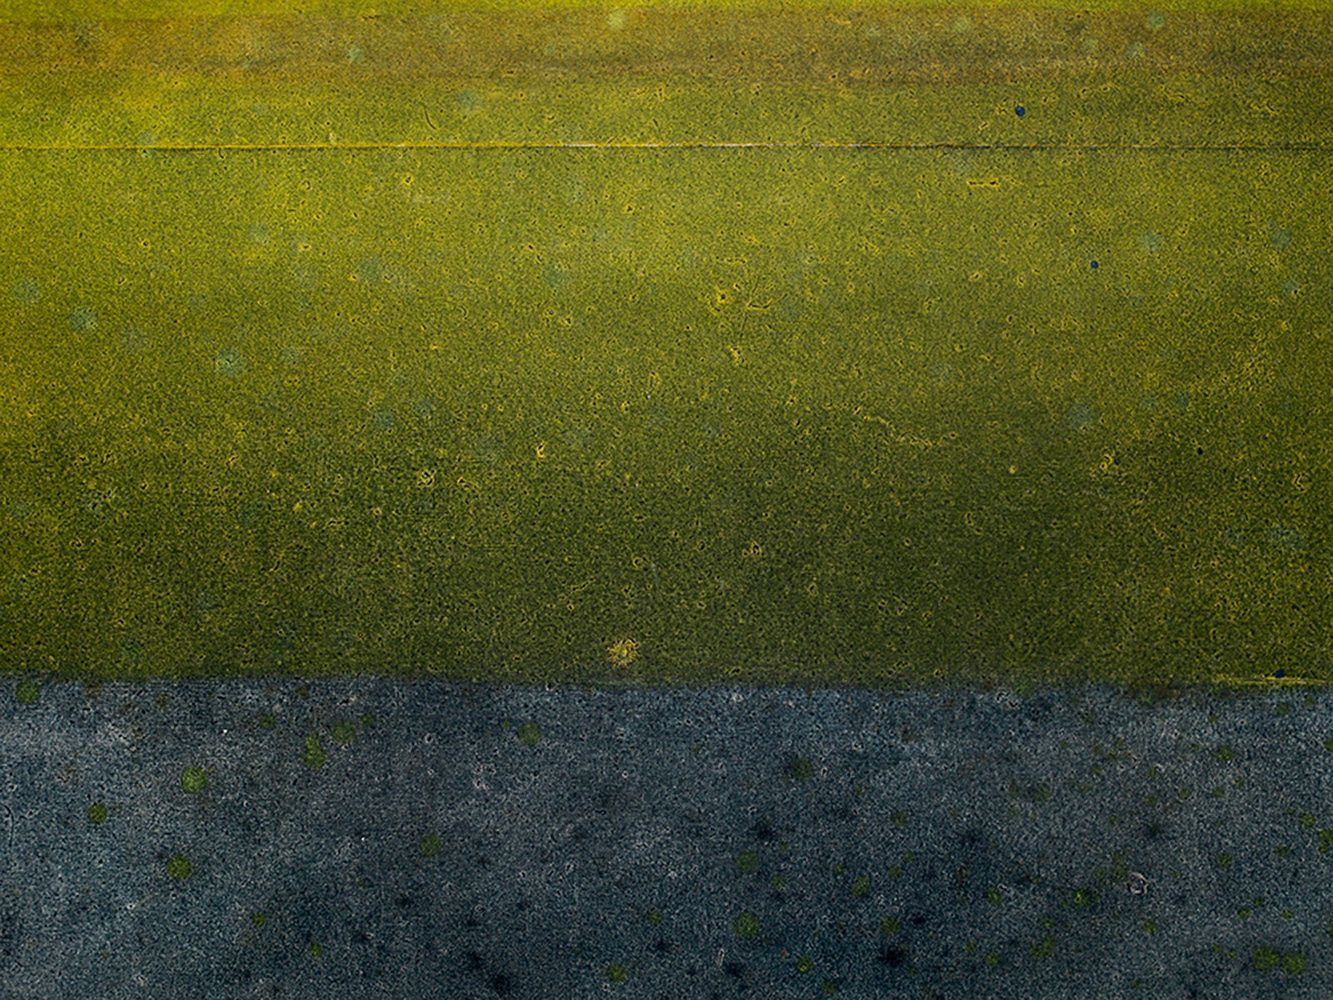 Untitled LXII, Abstract (large size),Elvire Ferle,Contemporary painting, detail 2